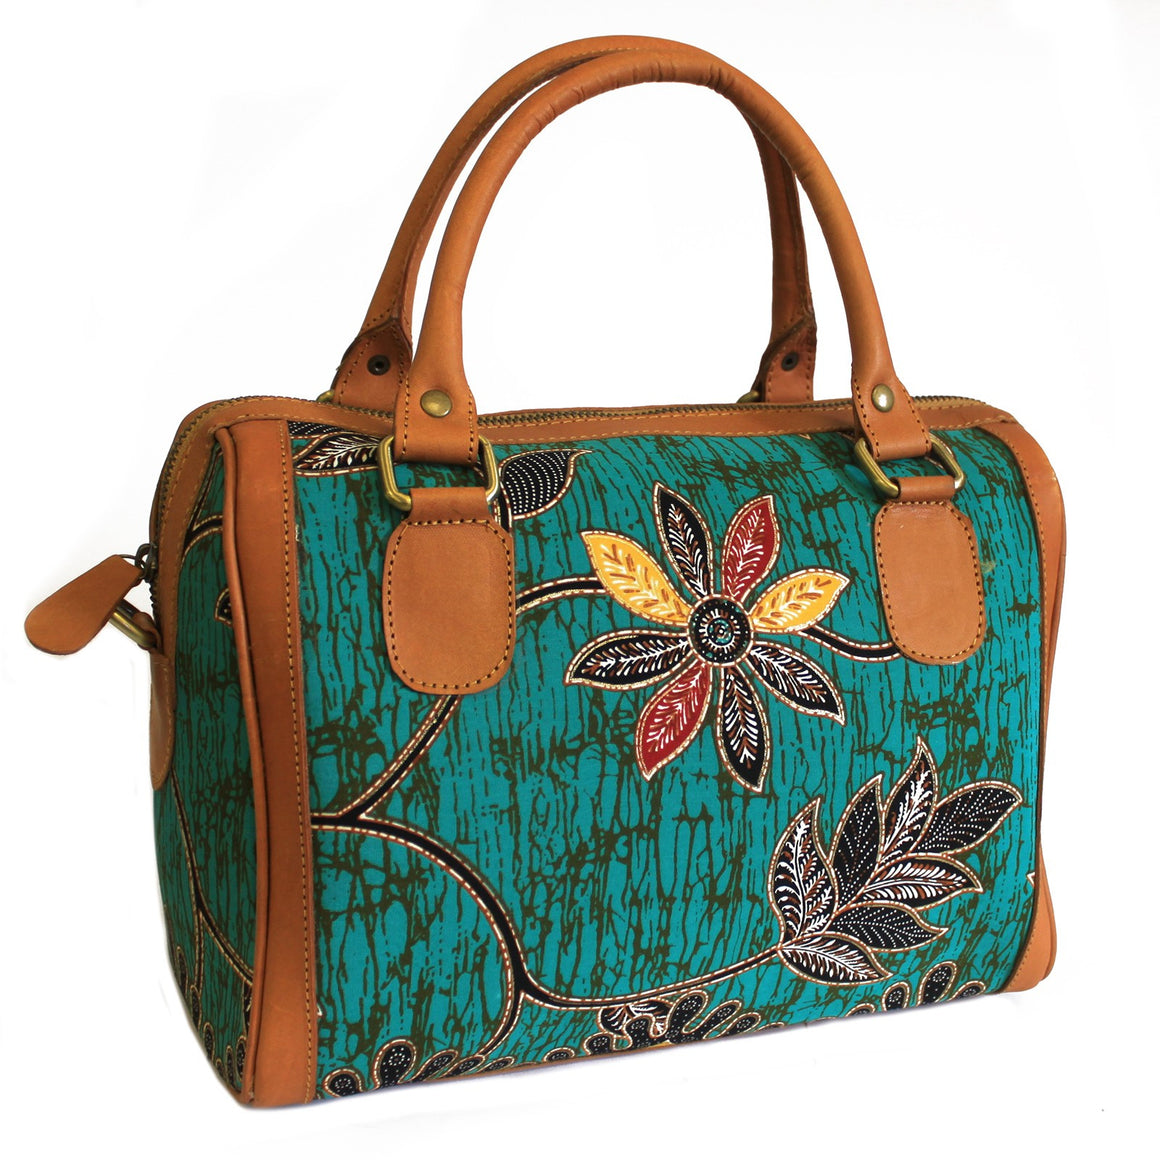 Bags, Balinese, Batik, Batik & Leather Bag, Ethnic Bags, Executive Bag, Gift, Goatskin, India, Indian, Java, Leather, Leather & Batik Java Bags, Teal, Yogyakarta